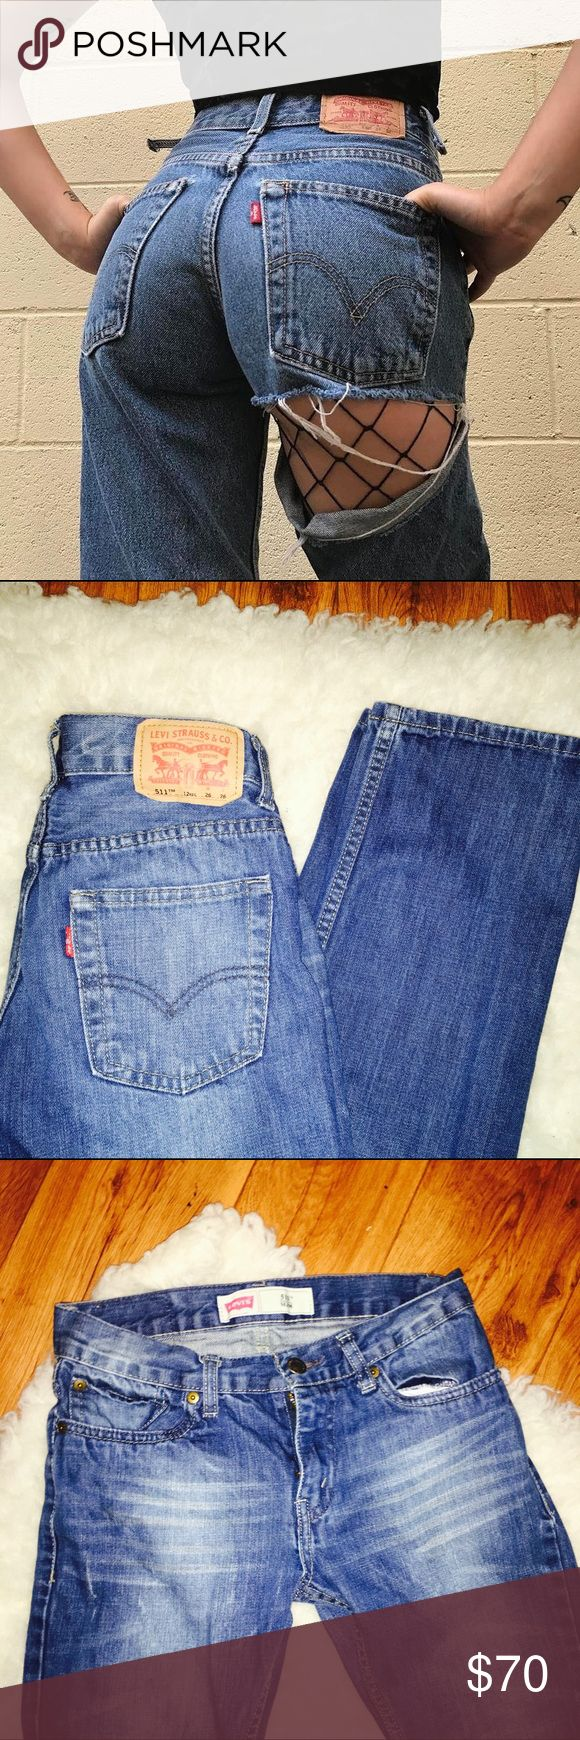 🌜LEVIS vintage 511 Ripped Jeans 🌜Levis 511 Ripped Denim Jean Shorts.  90's style. Vintage. Distressed. blue denim.  High waisted. Skinny cropped jeans  Good condition.  Size 26 Super Cute!! Great condition Levi's Jeans Skinny